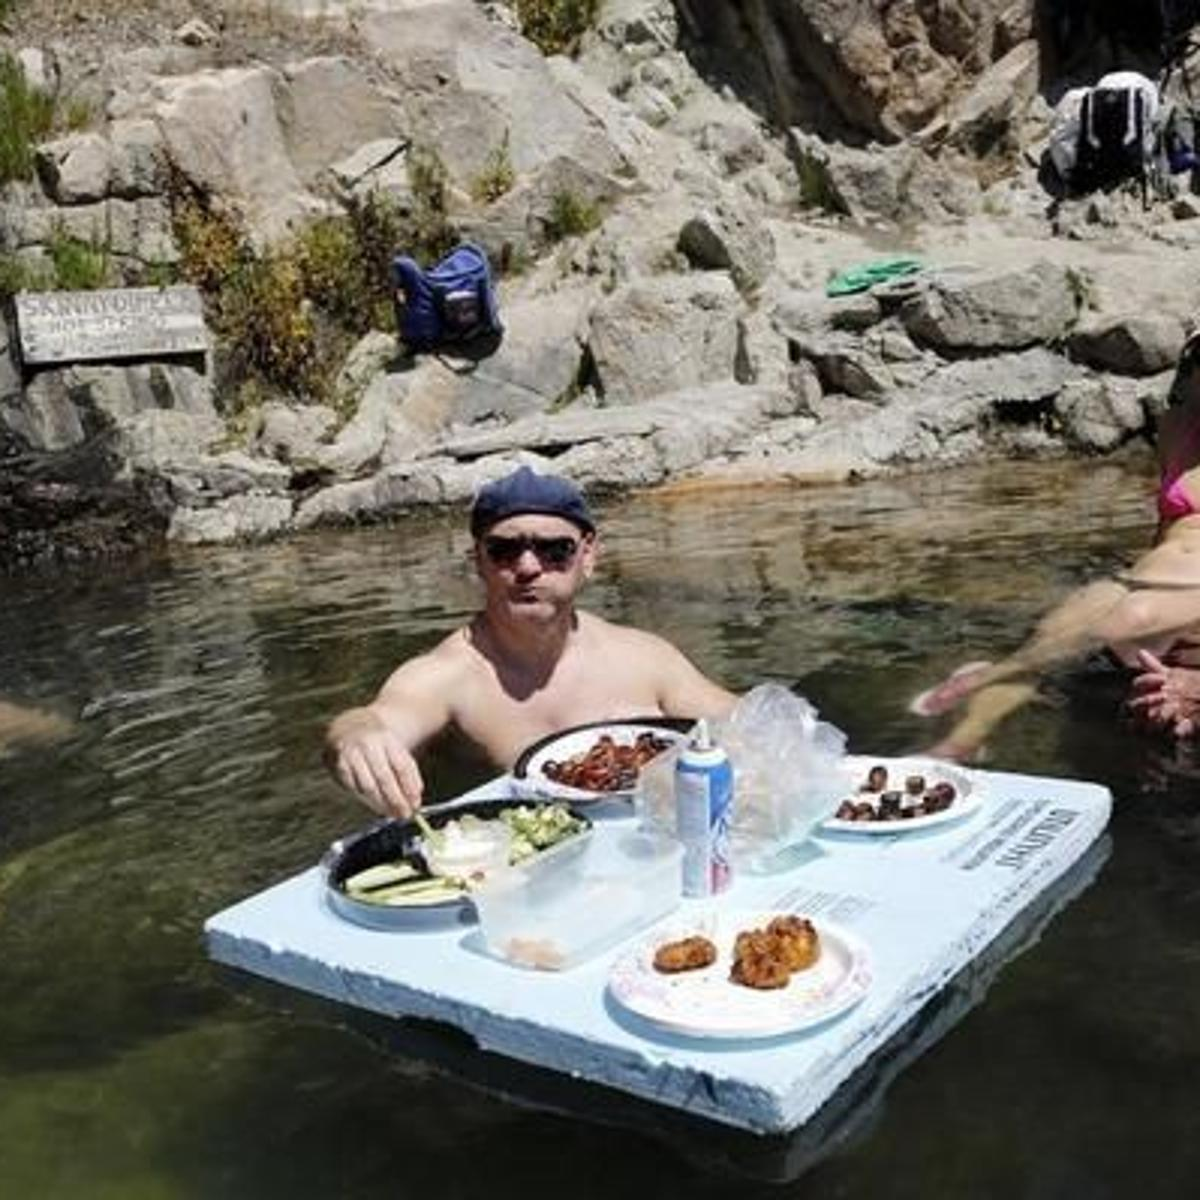 skinny dipper hot springs idaho map Fight To Keep Skinny Dipper Hot Springs Open Continues Despite